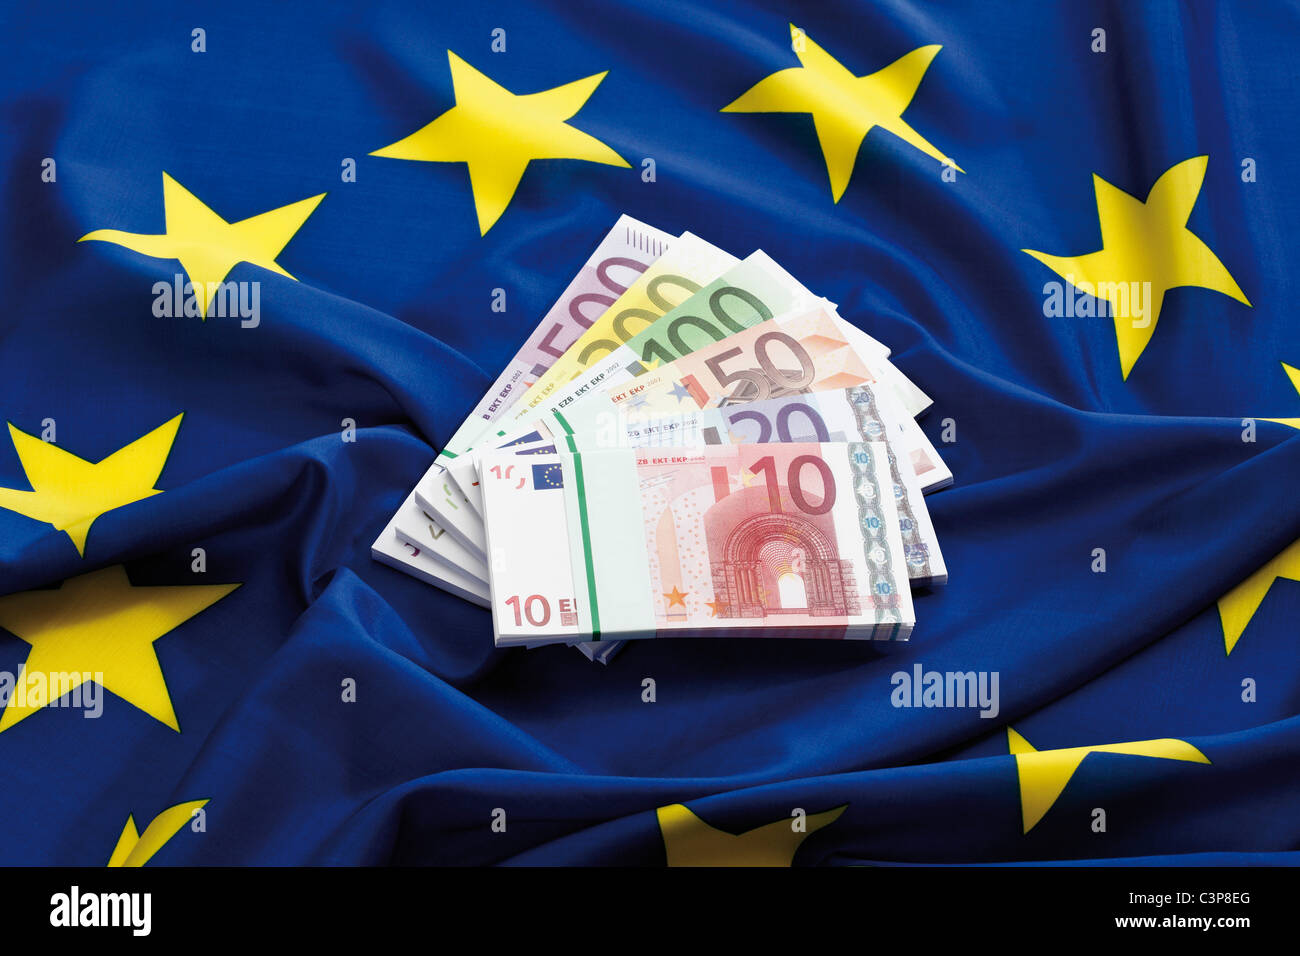 Euro notes fanned out on european union flag - Stock Image